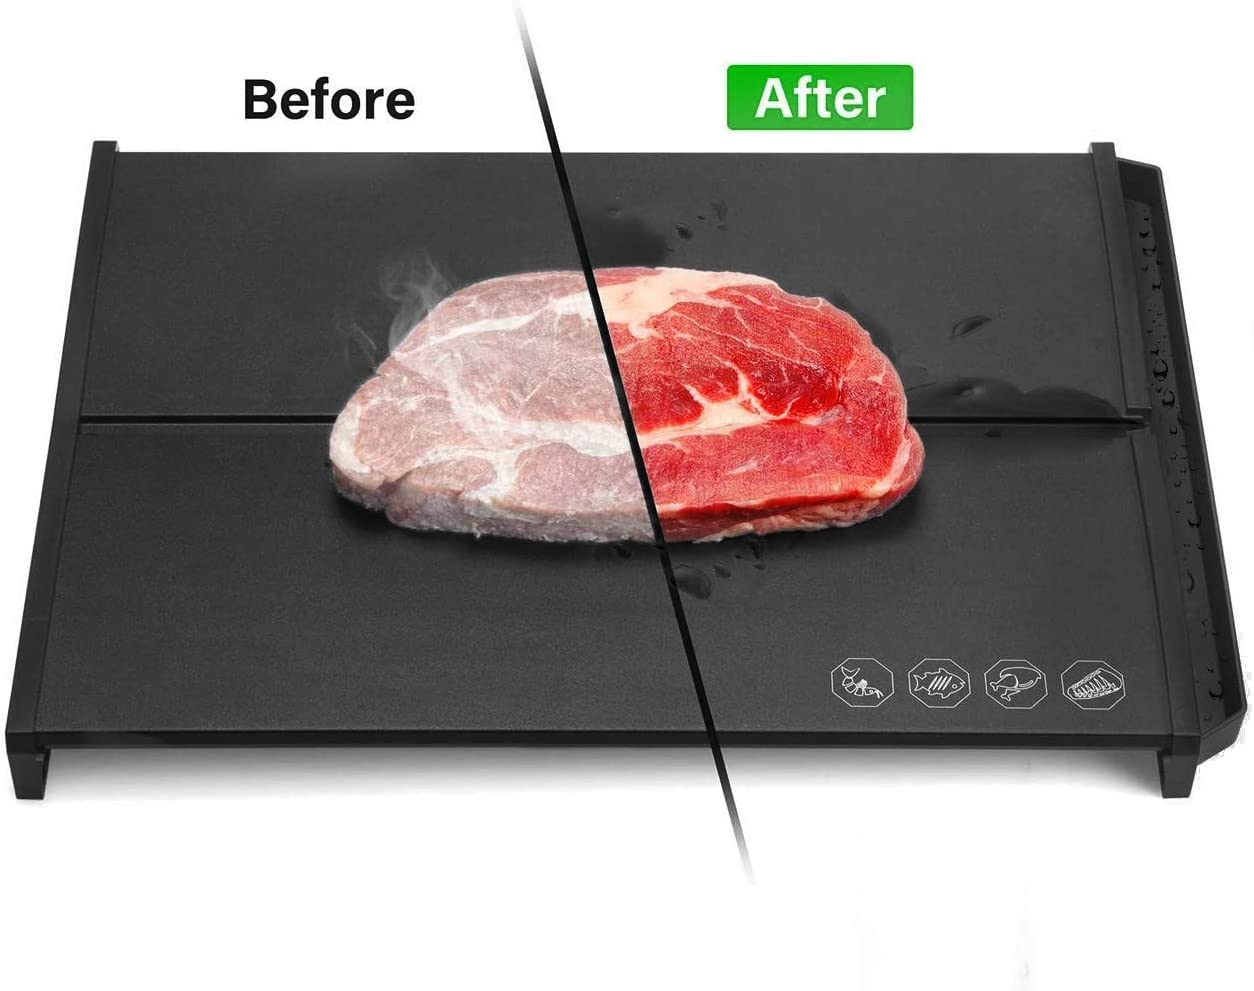 Fast Defrosting Tray, Meat Defrost Tray for Frozen Food, Eco Friendly Rapid Thawing Plate Defrost Meats Frozen Foods,with Water Juice Drip Storage Groove